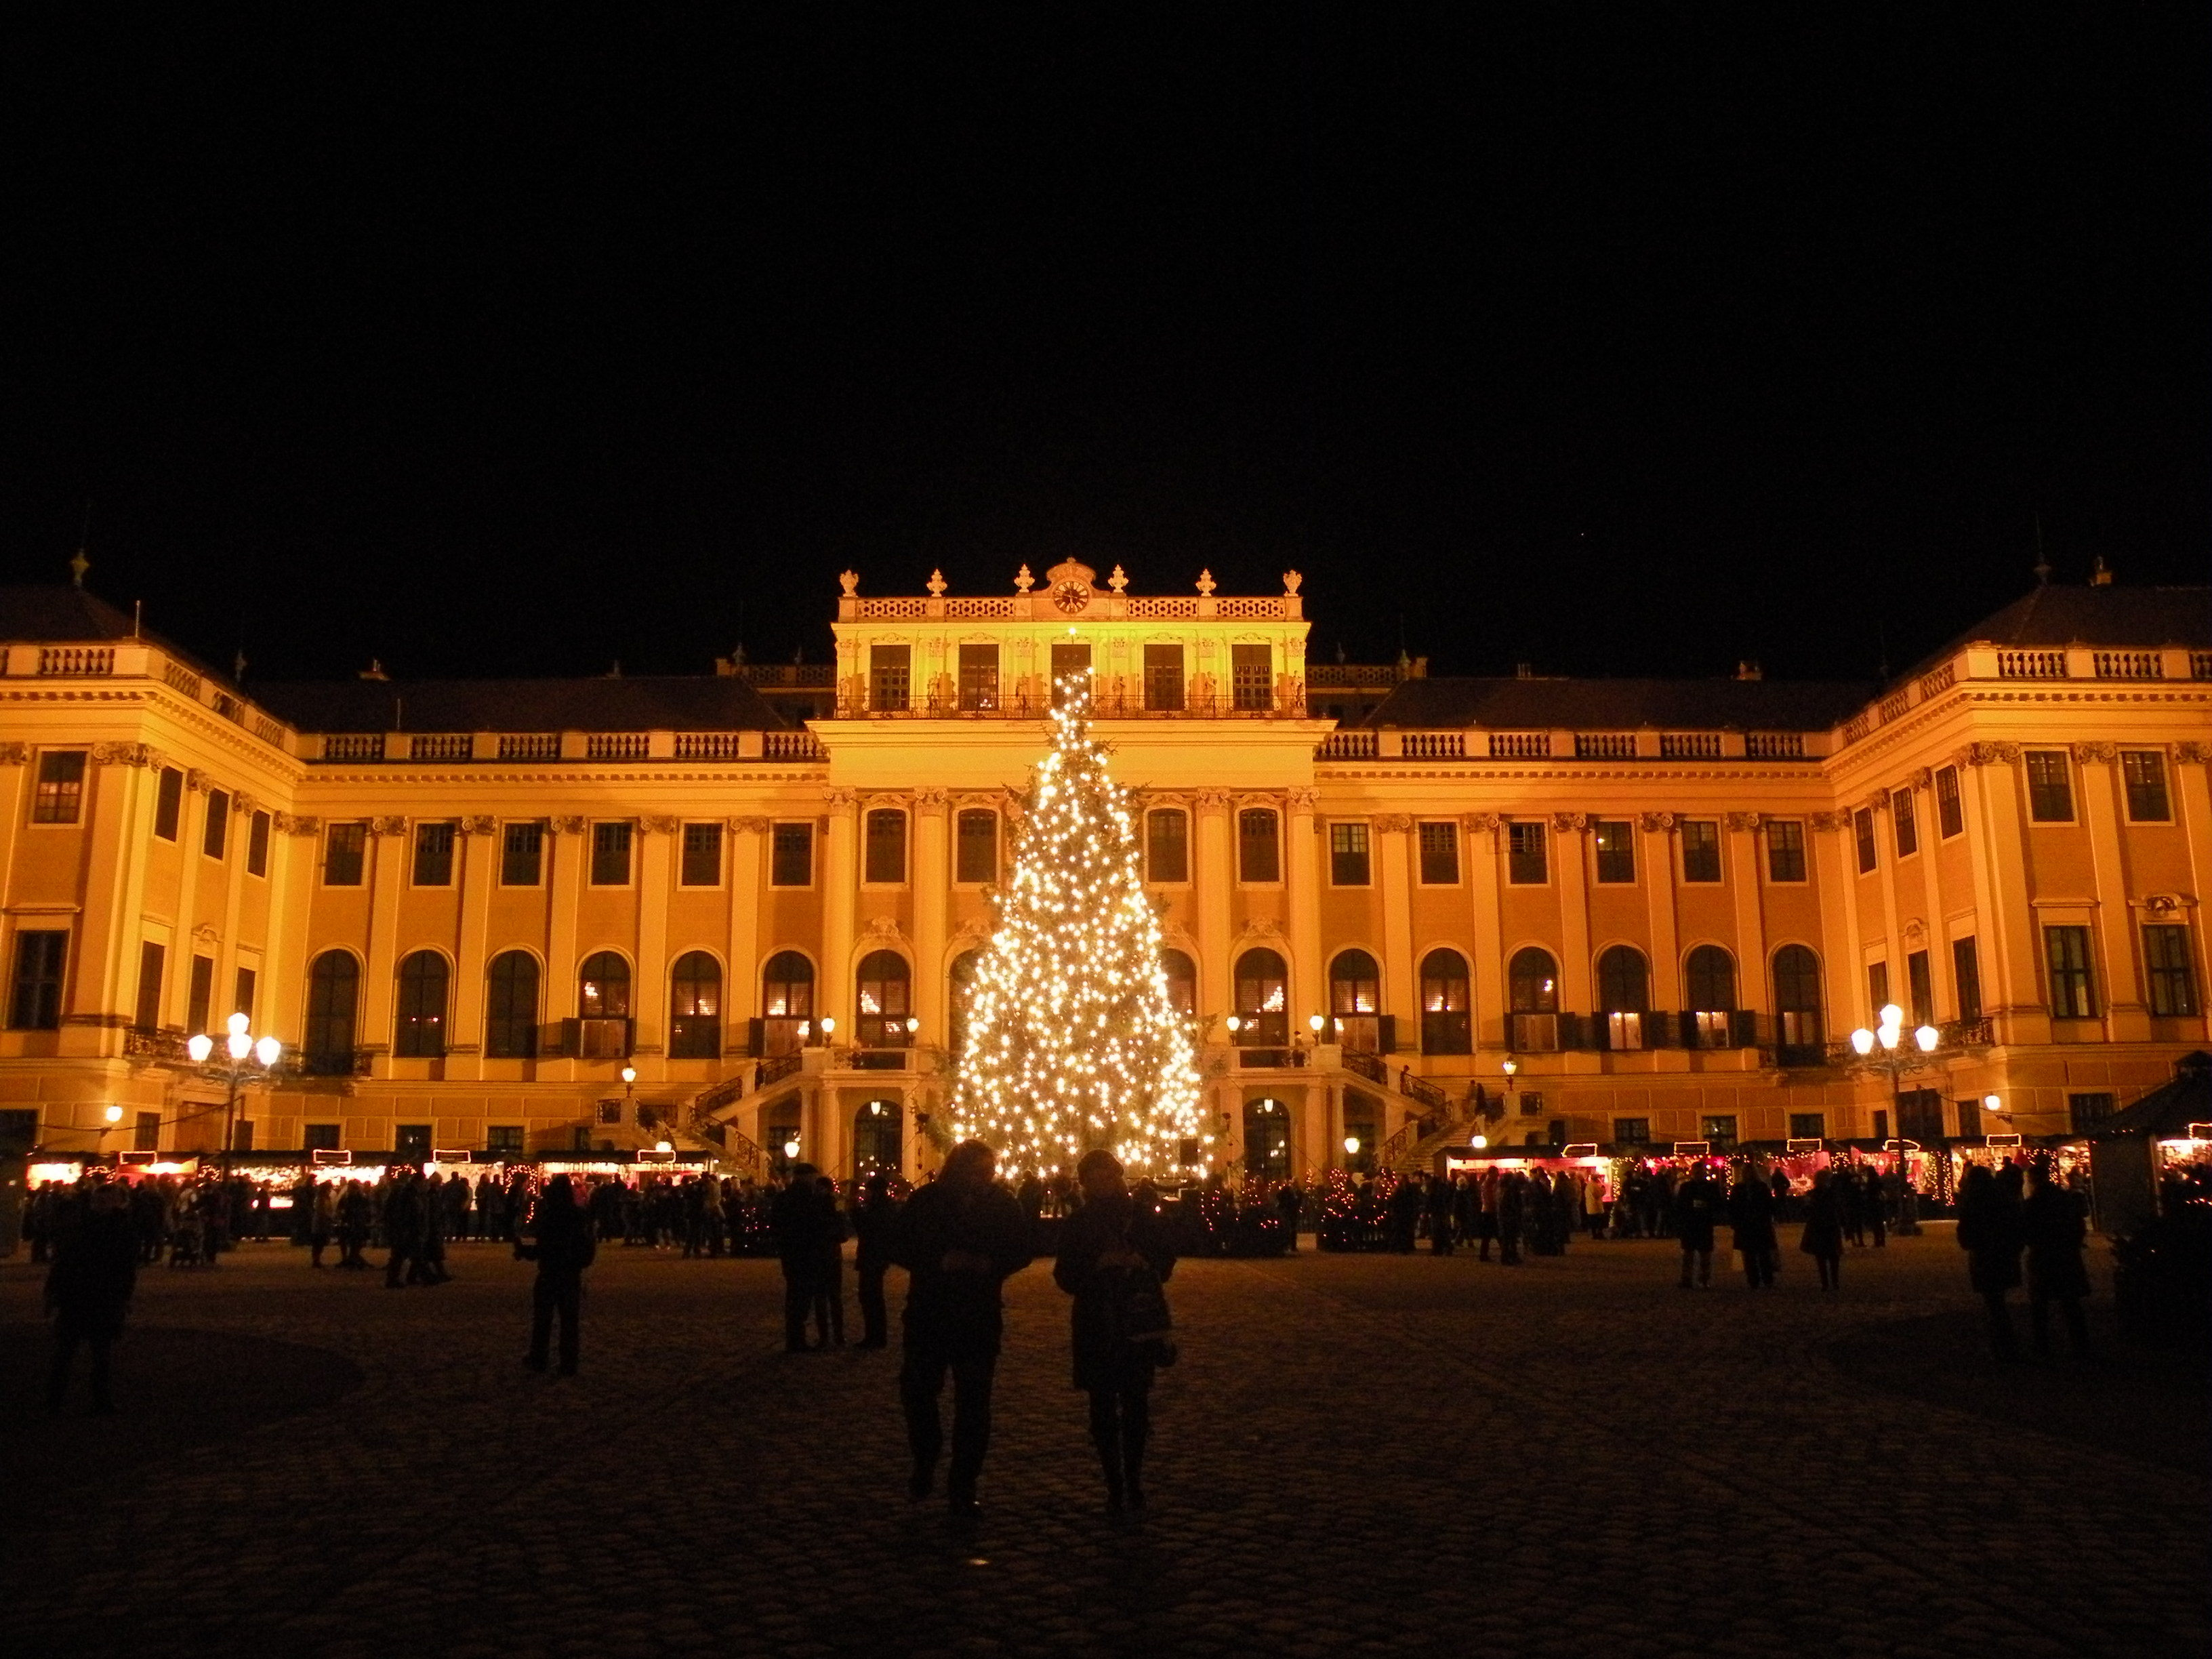 The Vienna Christmas Market 2011